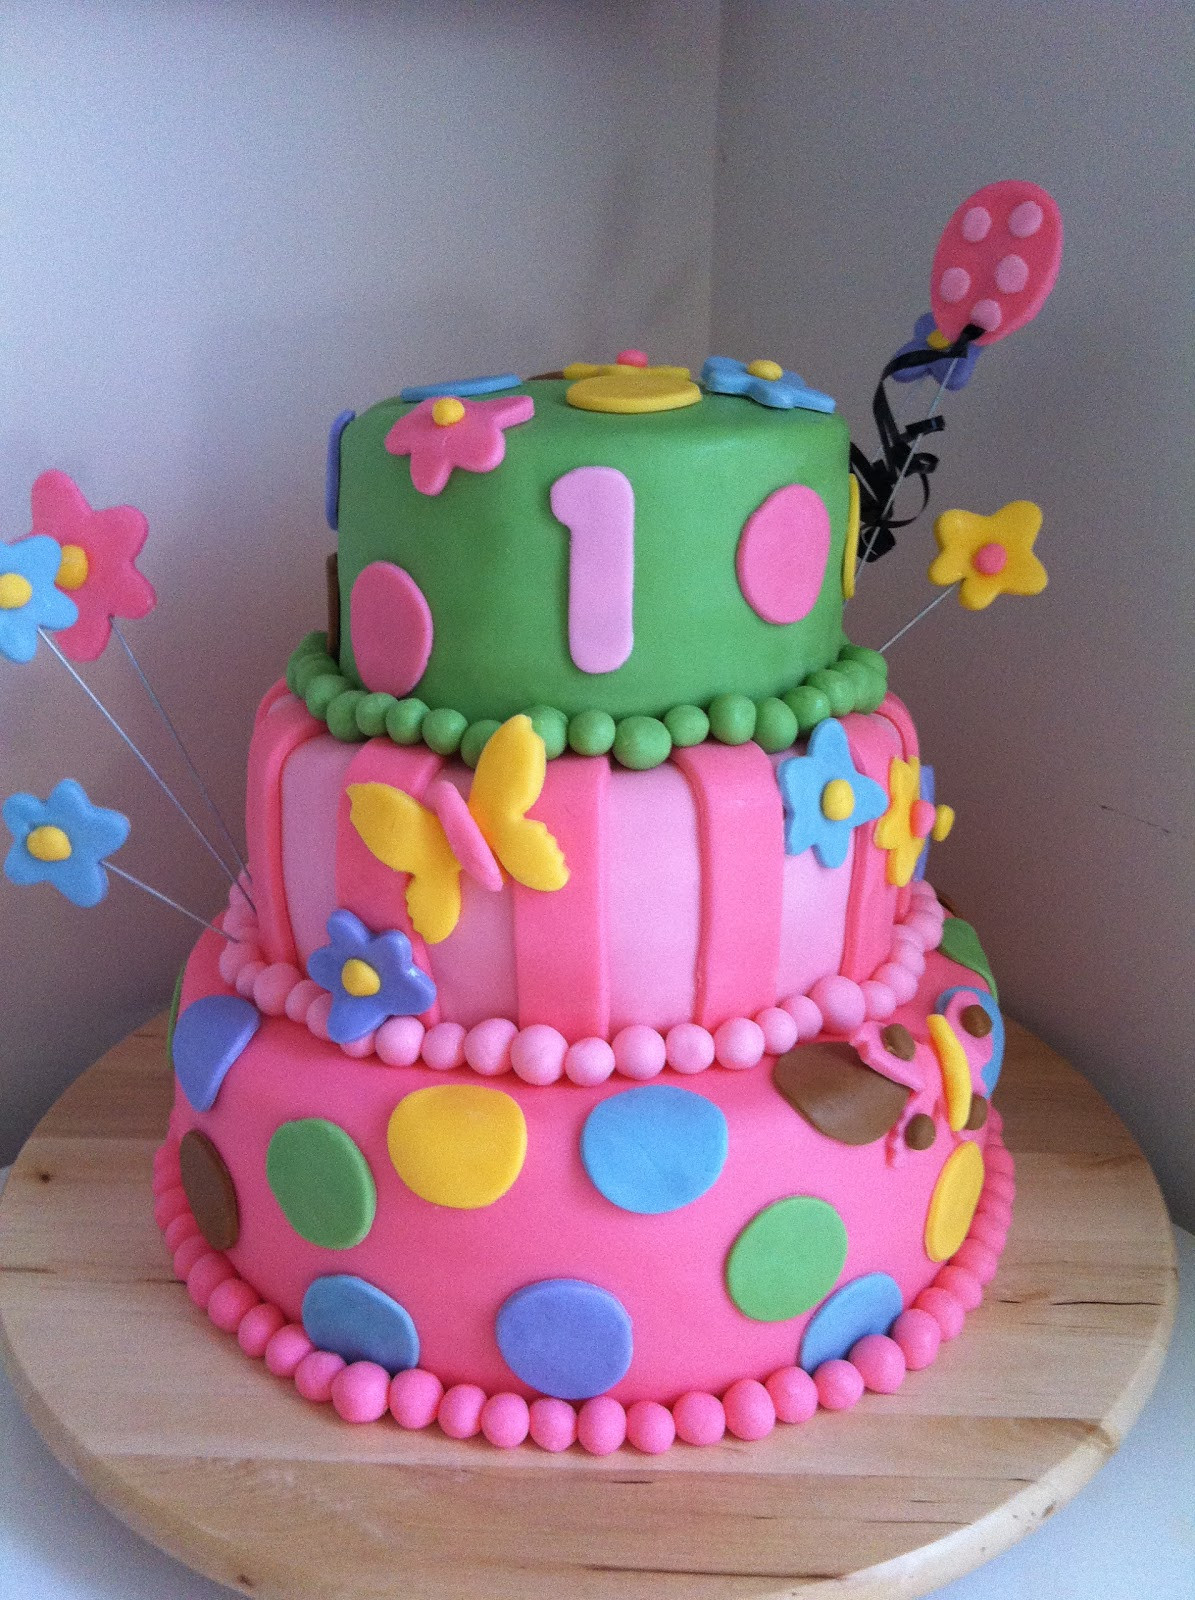 Best ideas about Girls Birthday Cake . Save or Pin Sweetness by D 1st Birthday Cakes for girls Now.